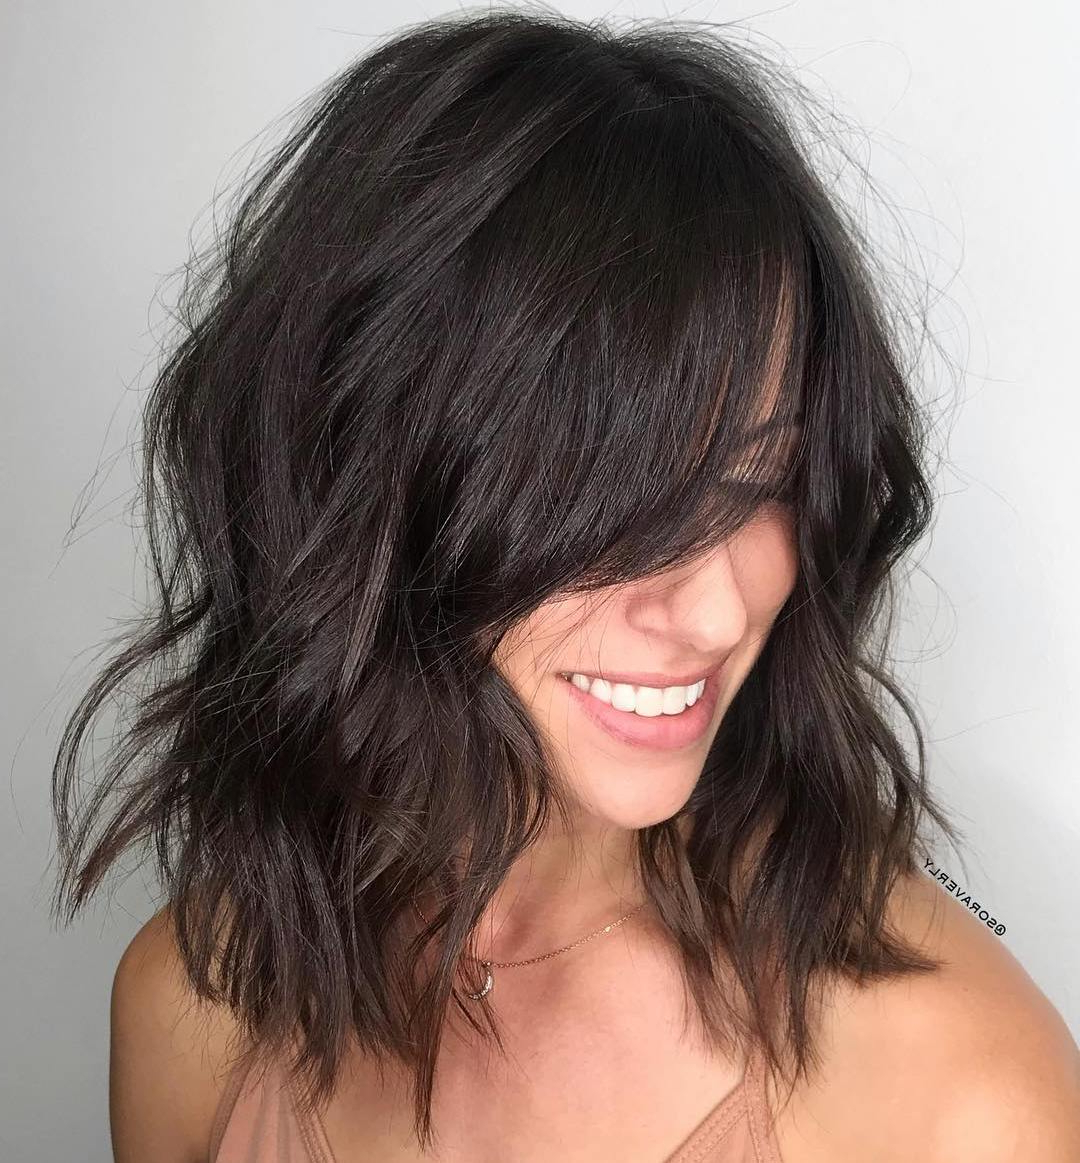 Fashionable Shag Haircuts With Disconnected Razored Layers With Regard To How To Nail Layered Hair In 2019: Full Guide To Lengths And (Gallery 10 of 20)